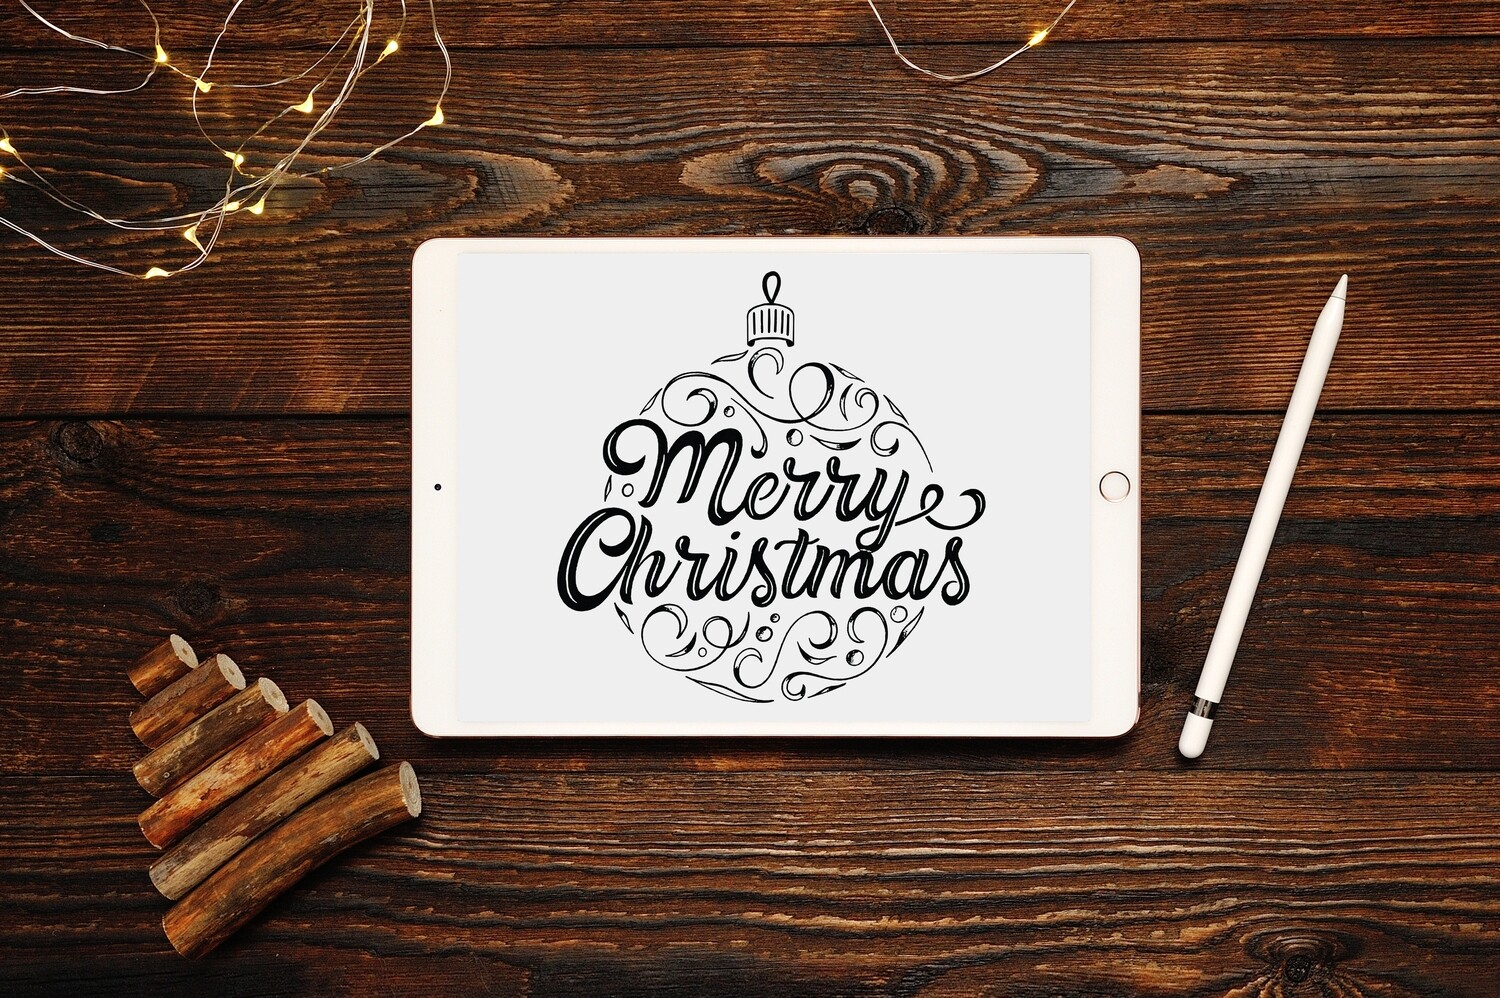 Merry Christmas Ornament Clipart Design - SVG & PNG - Personal and Commercial Use